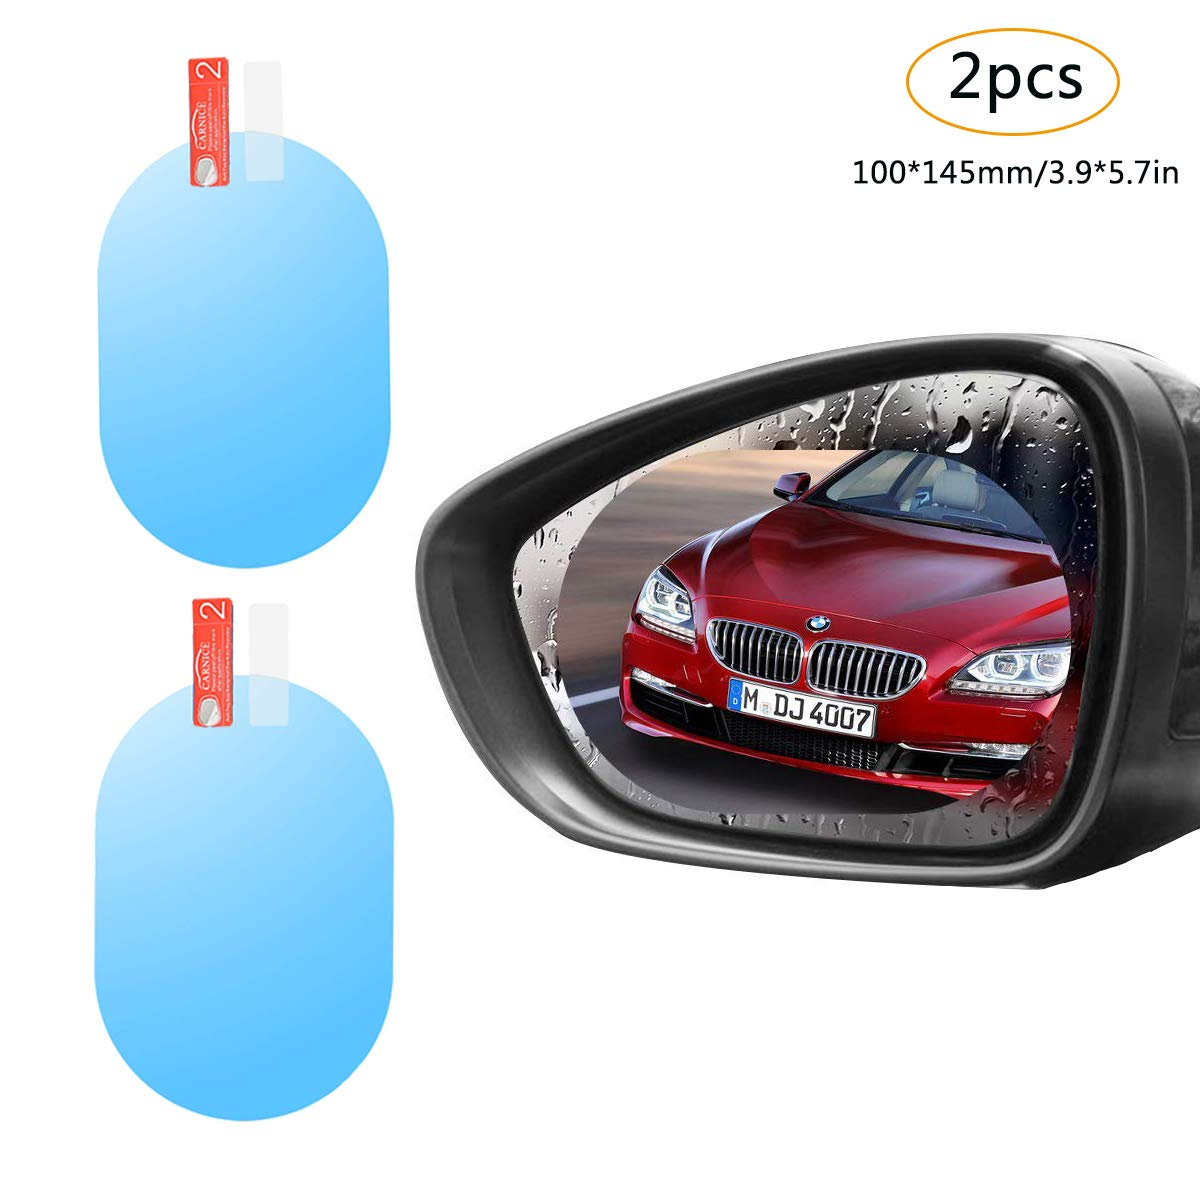 Rearview Mirror Rain Film Rainproof Rear Mirror Membrane HD Anti-Fog Anti-Glare Oil-Proof Clear Vision Safe Driving Accessories Rain Foggy Day for Car Motorcycle Set of 2pcs (Oval 100× 145mm) YVO